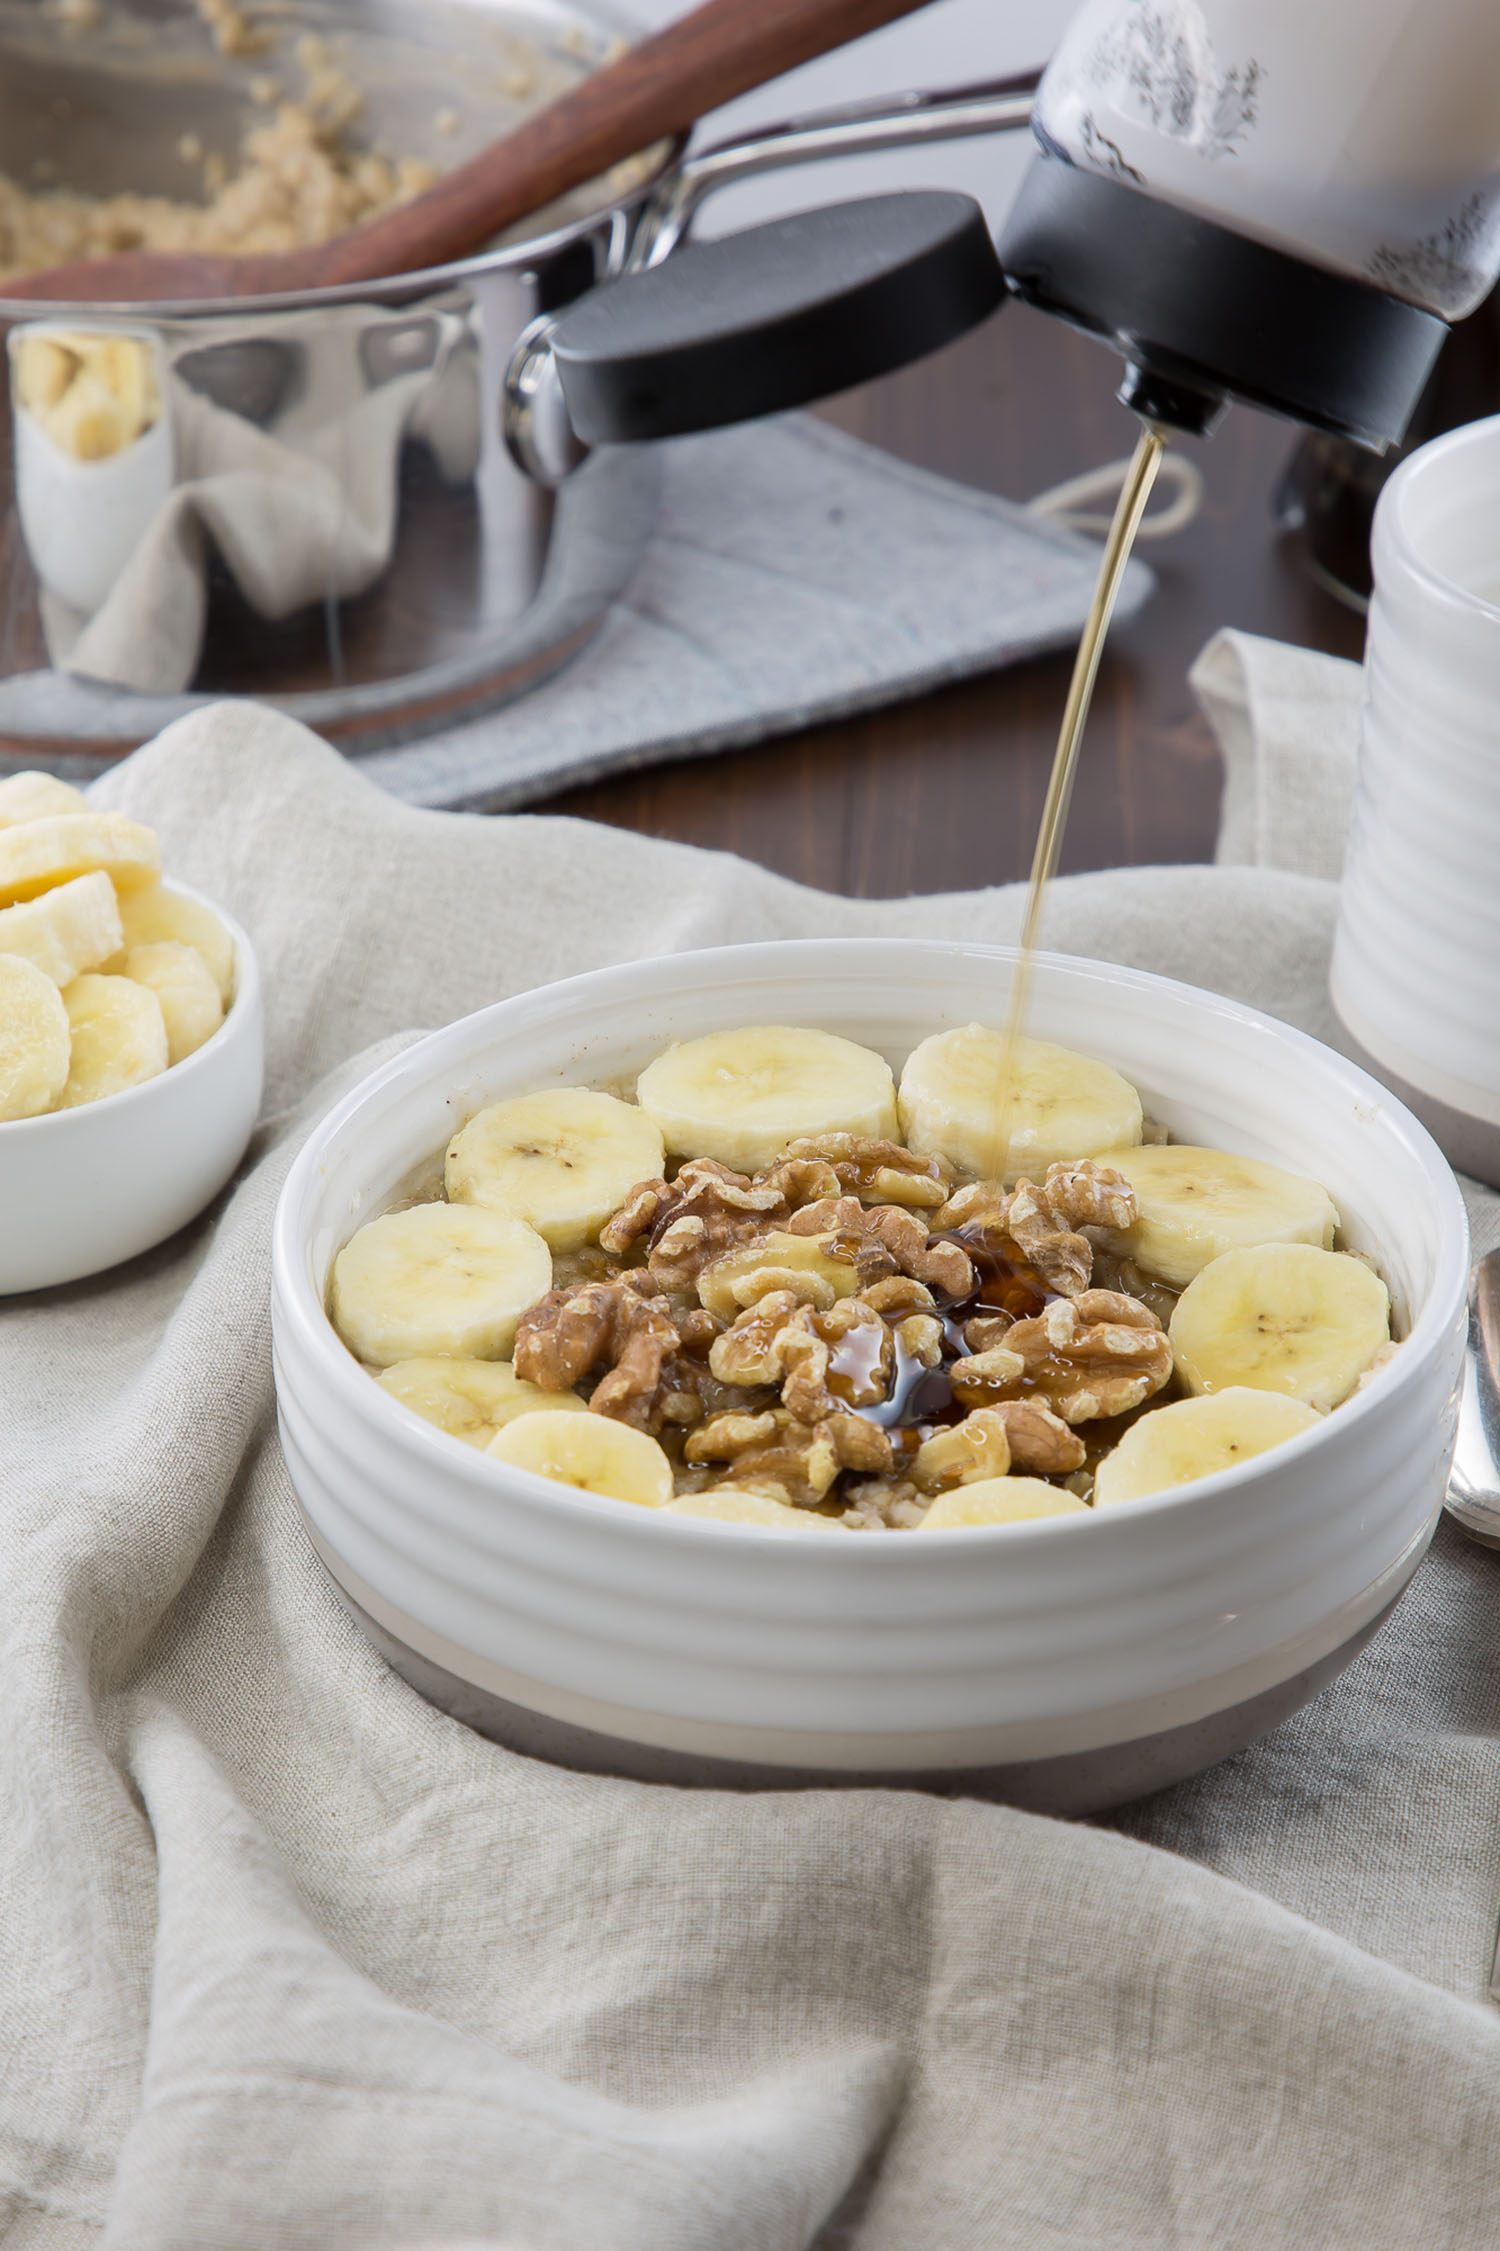 banana nut oatmeal with maple syrup pouring on it